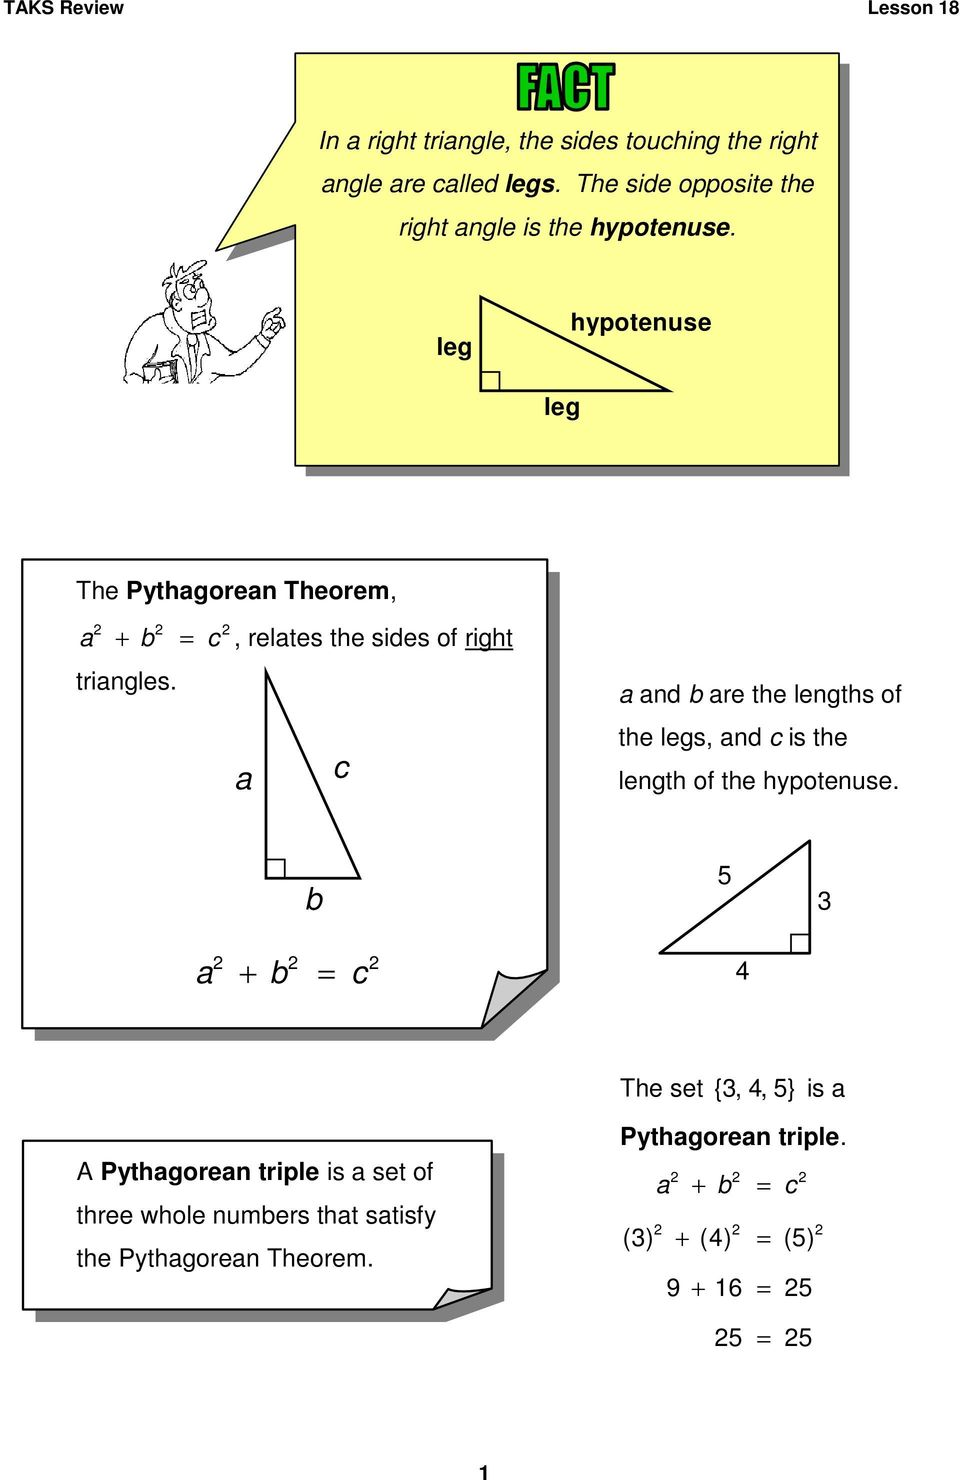 leg hypotenuse leg The Pythagorean Theorem, a + b = c, relates the sides of right triangles.